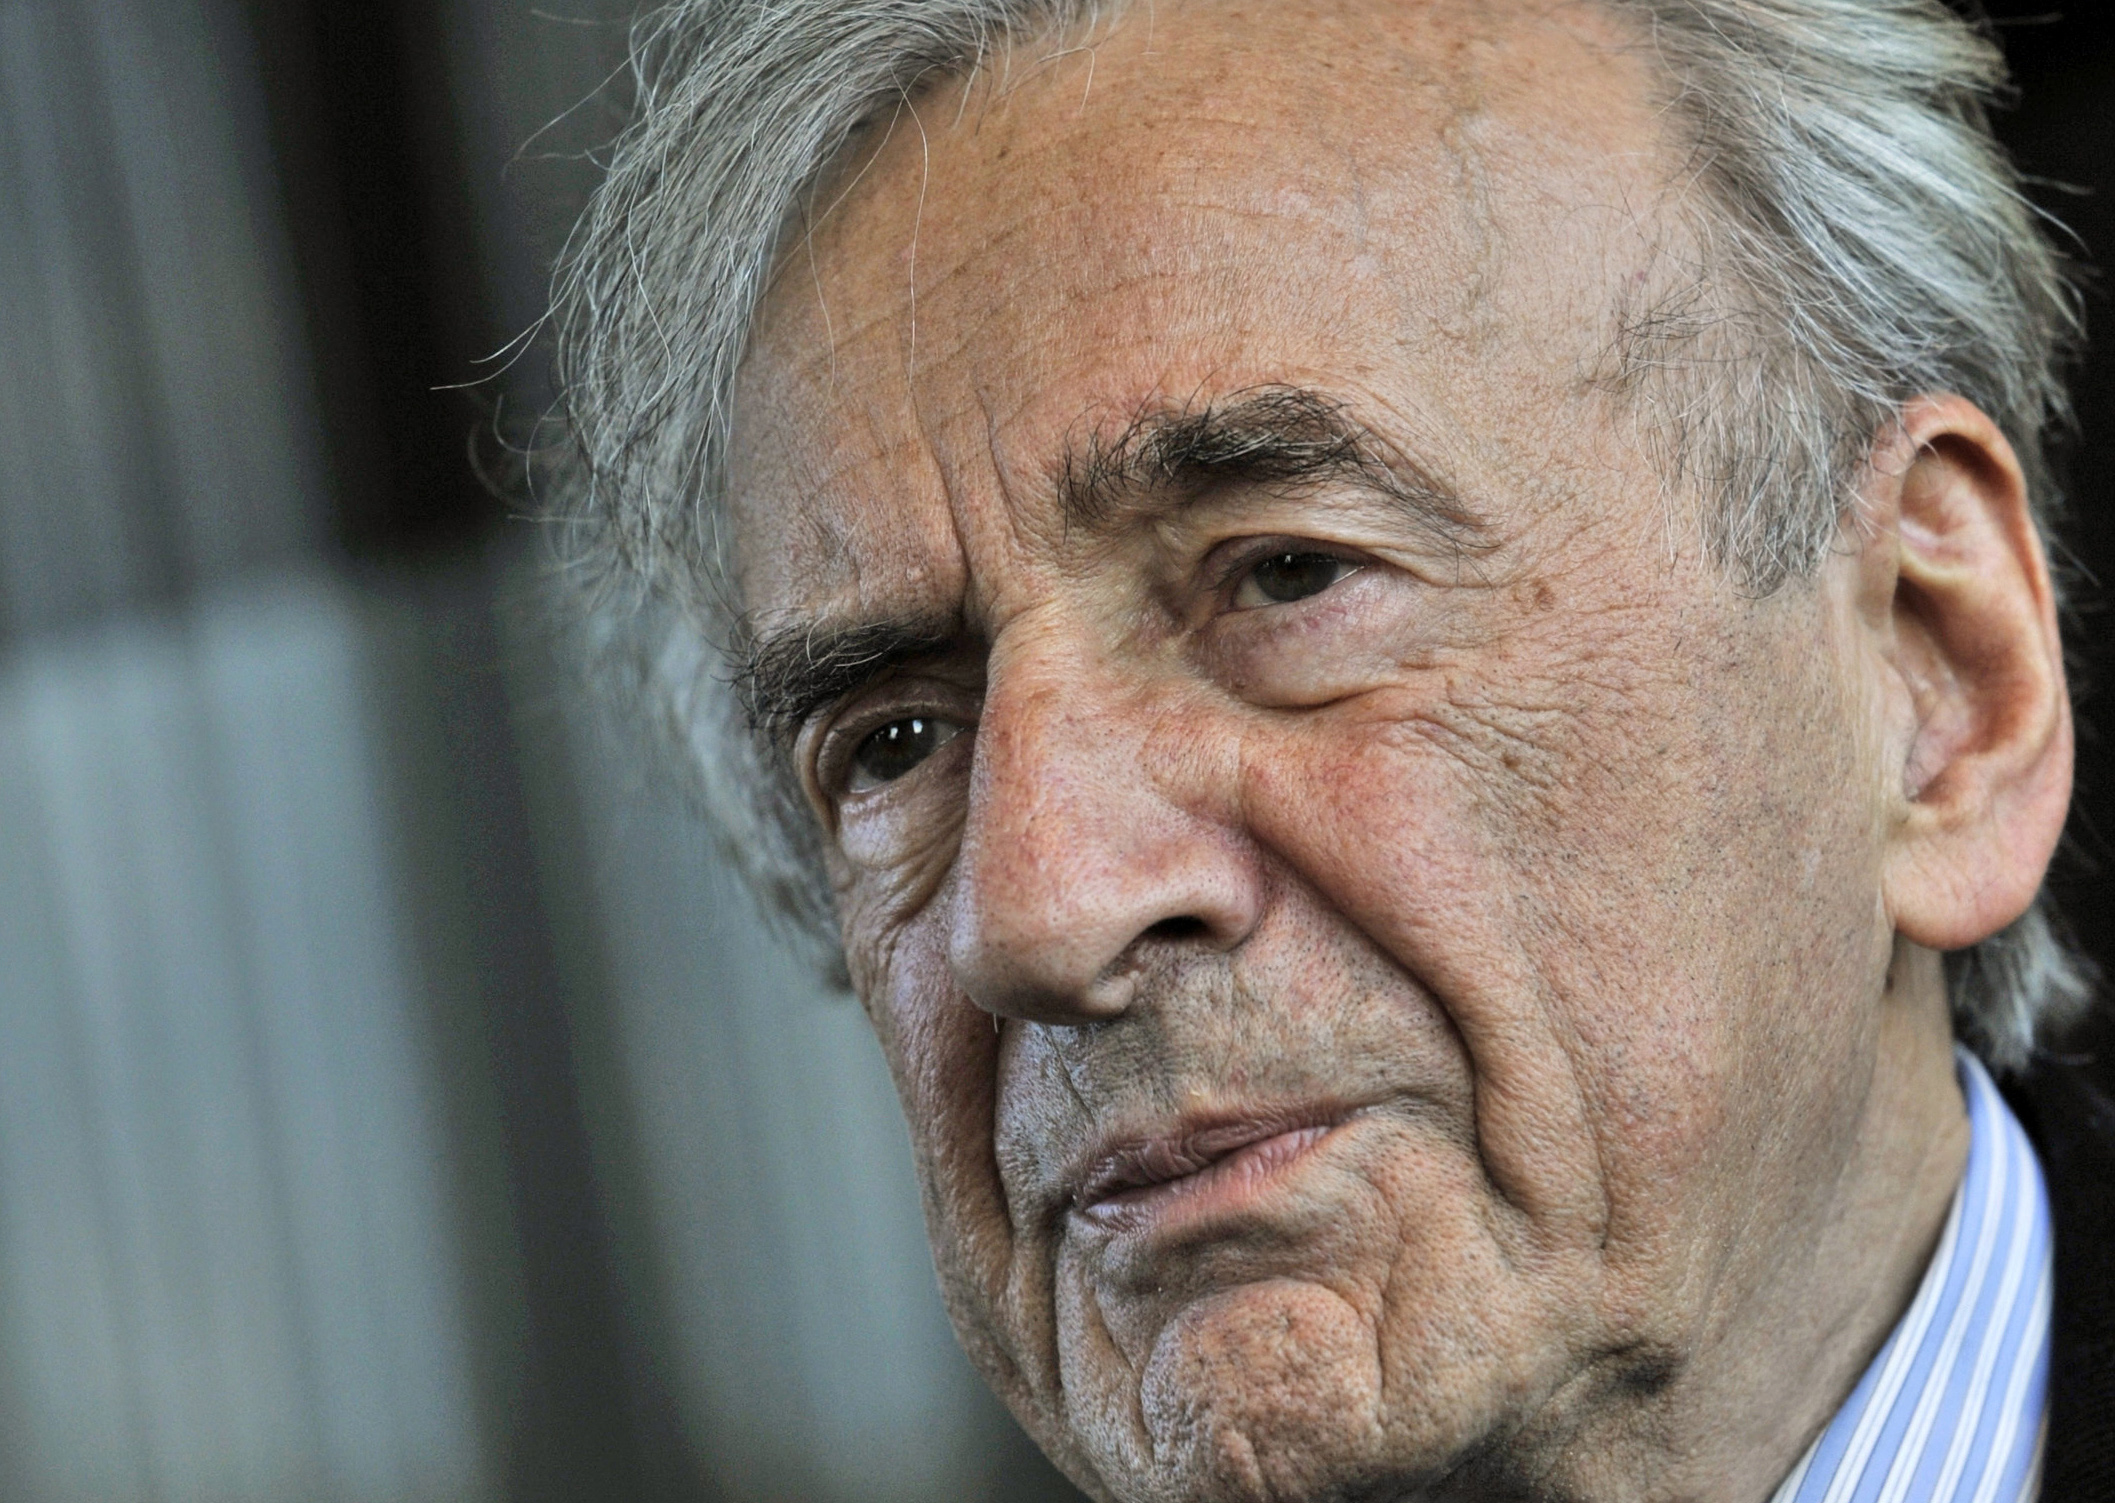 Holocaust survivor and Nobel Peace Prize winning author Elie Wiesel listens during an interview with The Associated Press in Budapest, Hungary, Dec. 10, 2009.